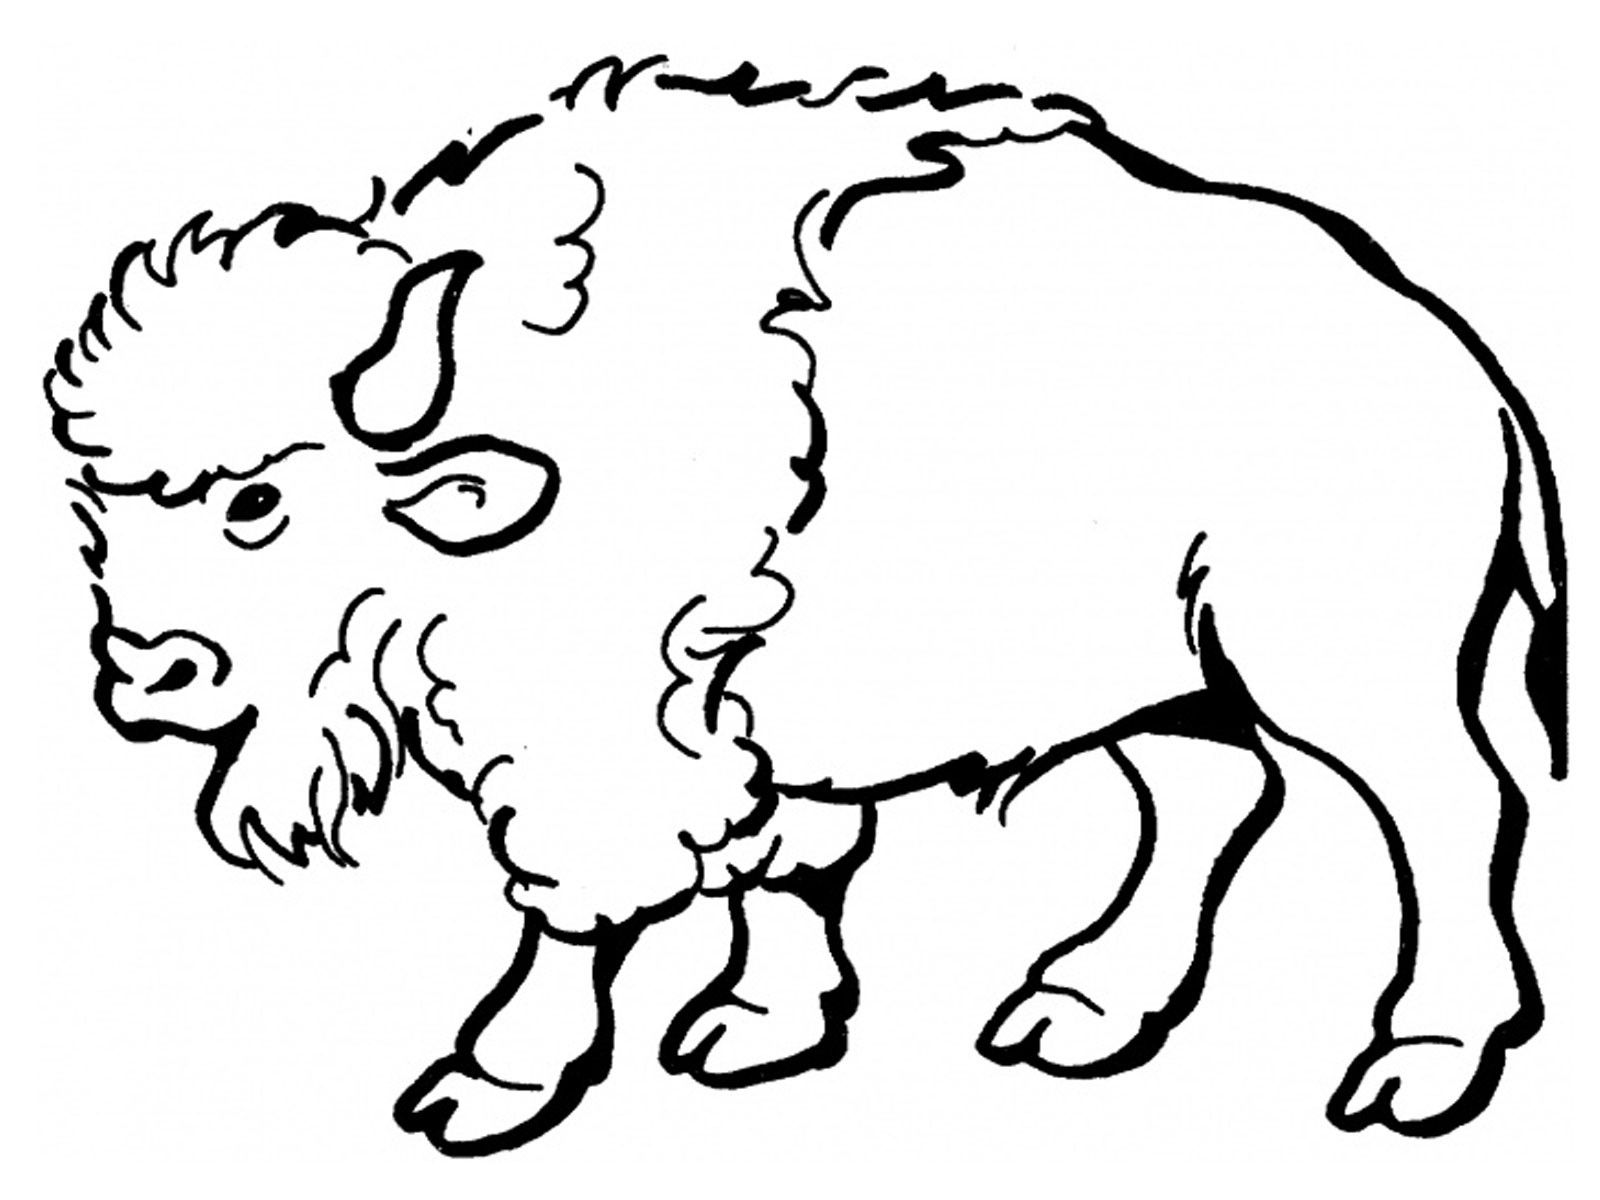 Bison clipart coloring page. Free printable pages for